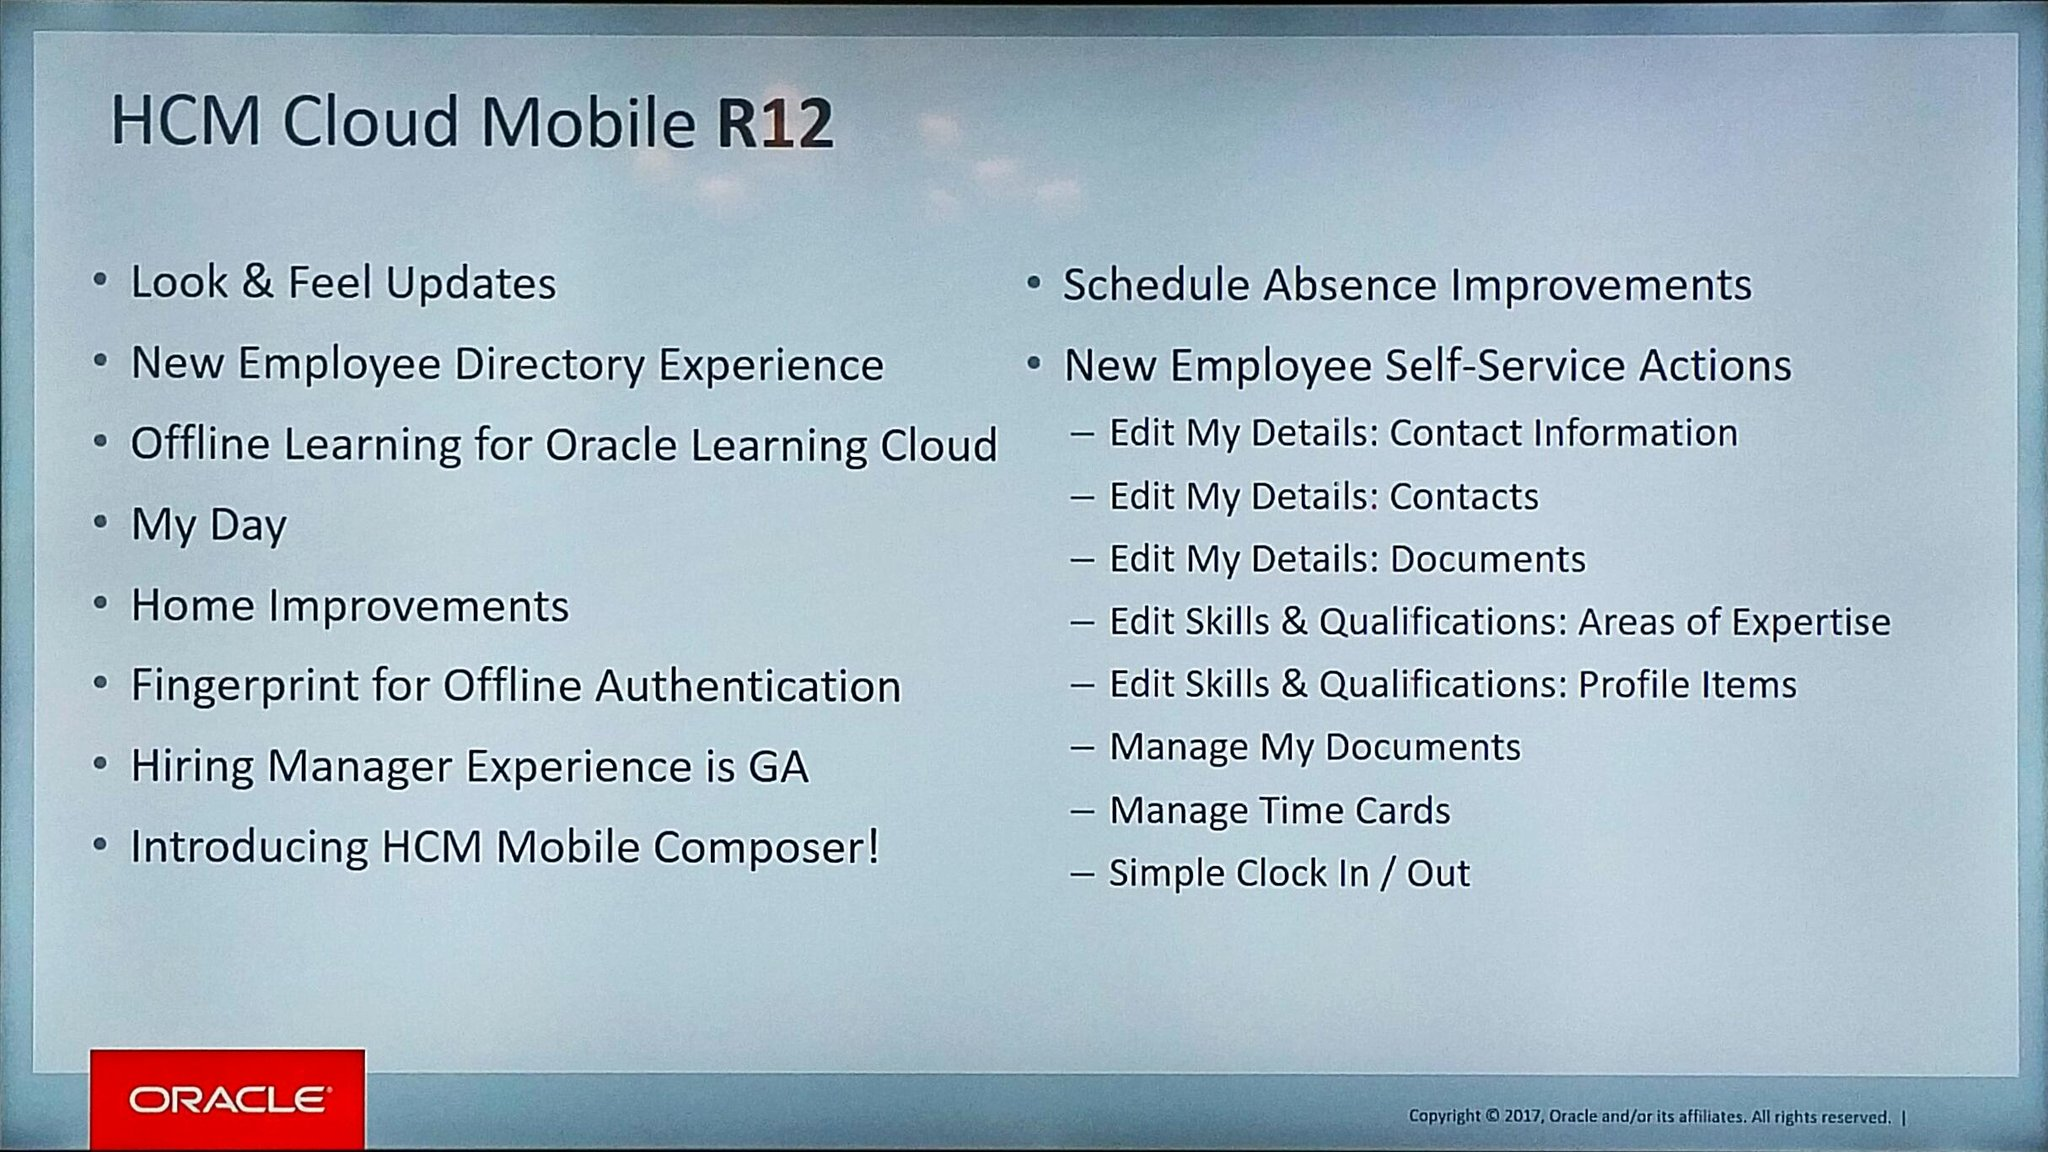 What's is coming in @OracleHCM Mobile R12 #OracleHCM https://t.co/yD9RinxMad